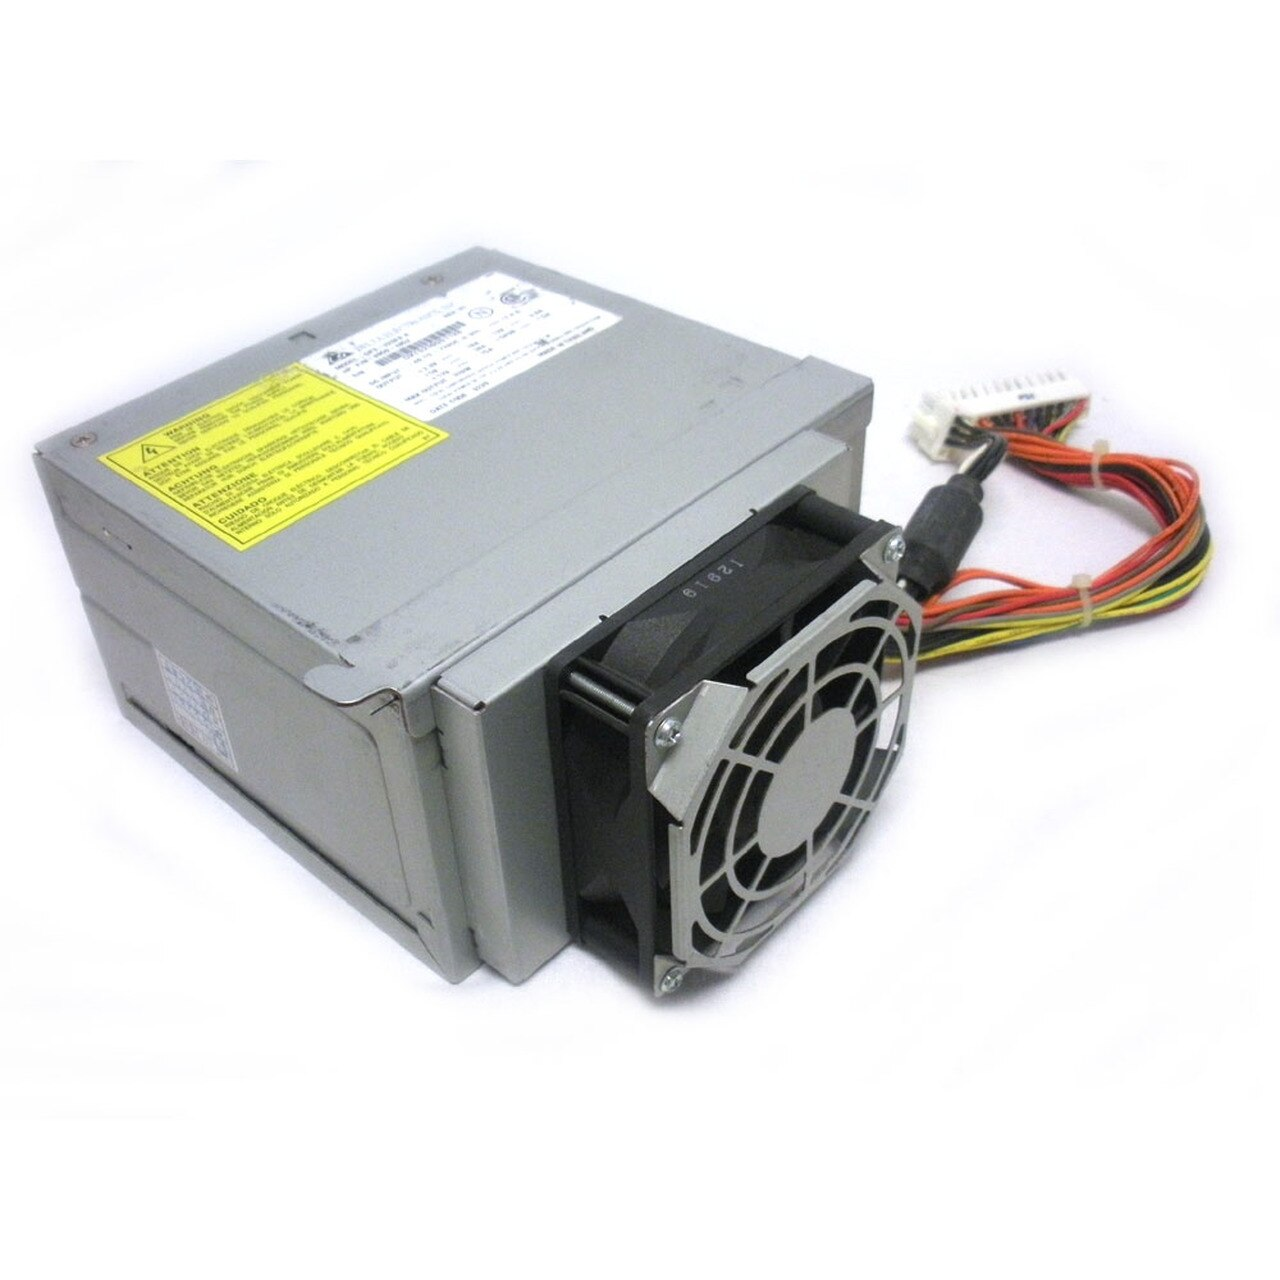 Buy & save on computer server power supplies from your trusted partners at Flagship Technologies. Buy Now! Or browse our extensive revolving inventory of computer server spare parts online and get the best deals to maintain or upgrade your IT project or data center.